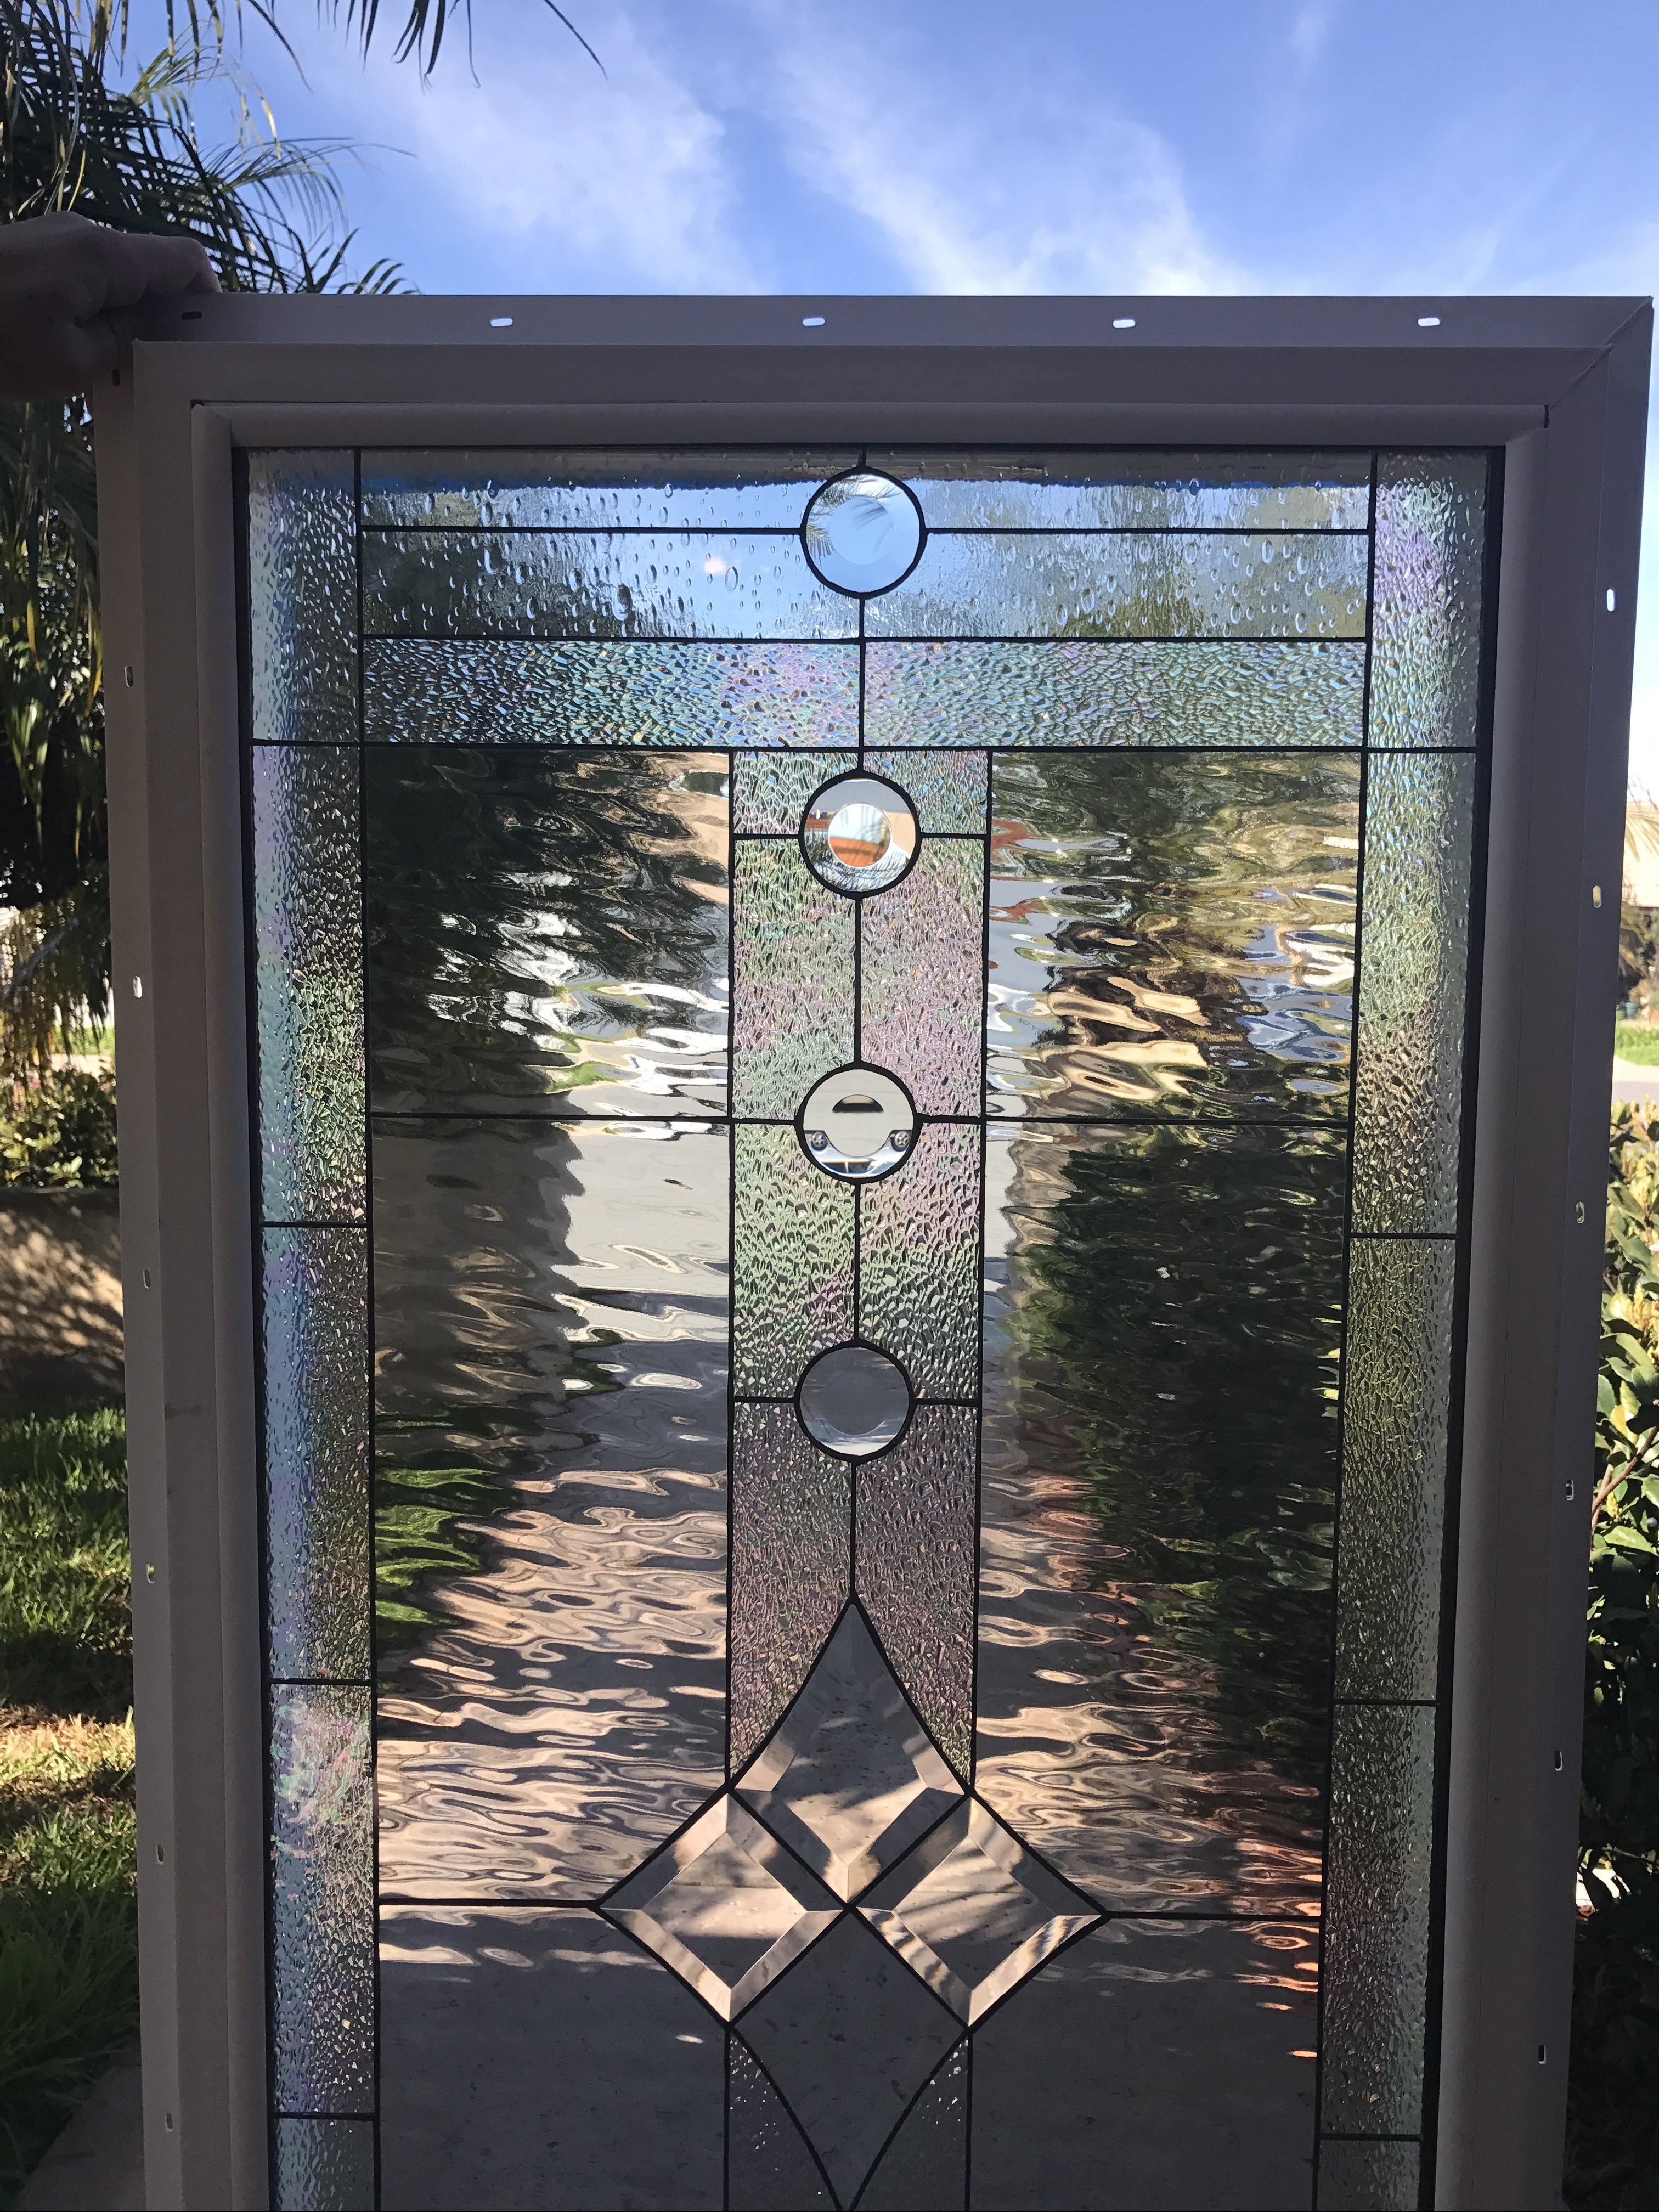 insulated between tempered glass and vinyl framed  the  u0026quot poway u0026quot  leaded stained glass window panel